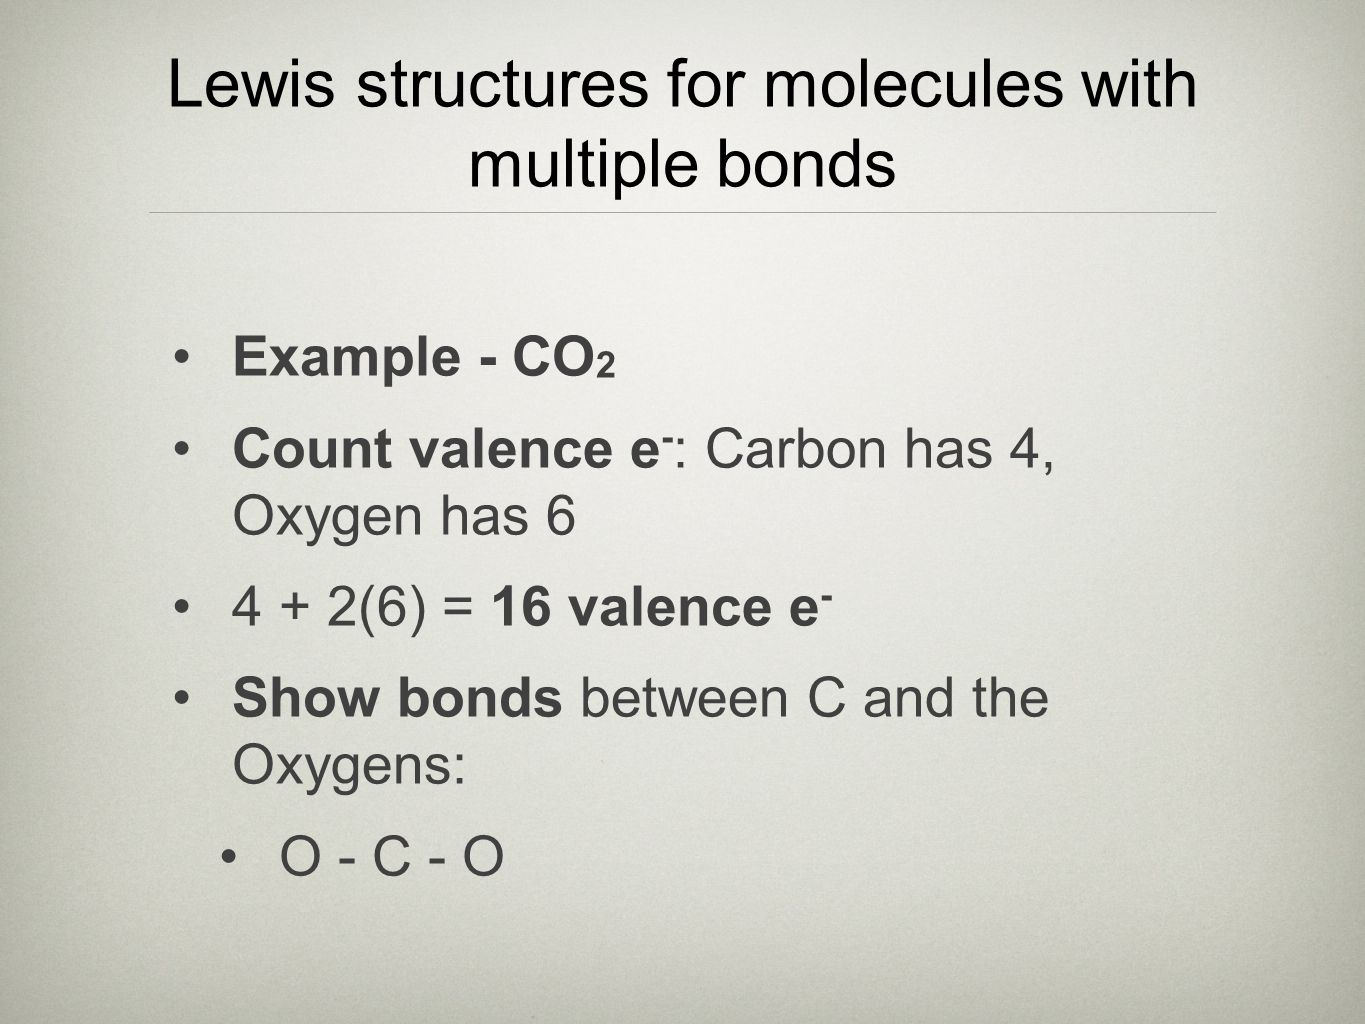 Lewis structures for molecules with multiple bonds